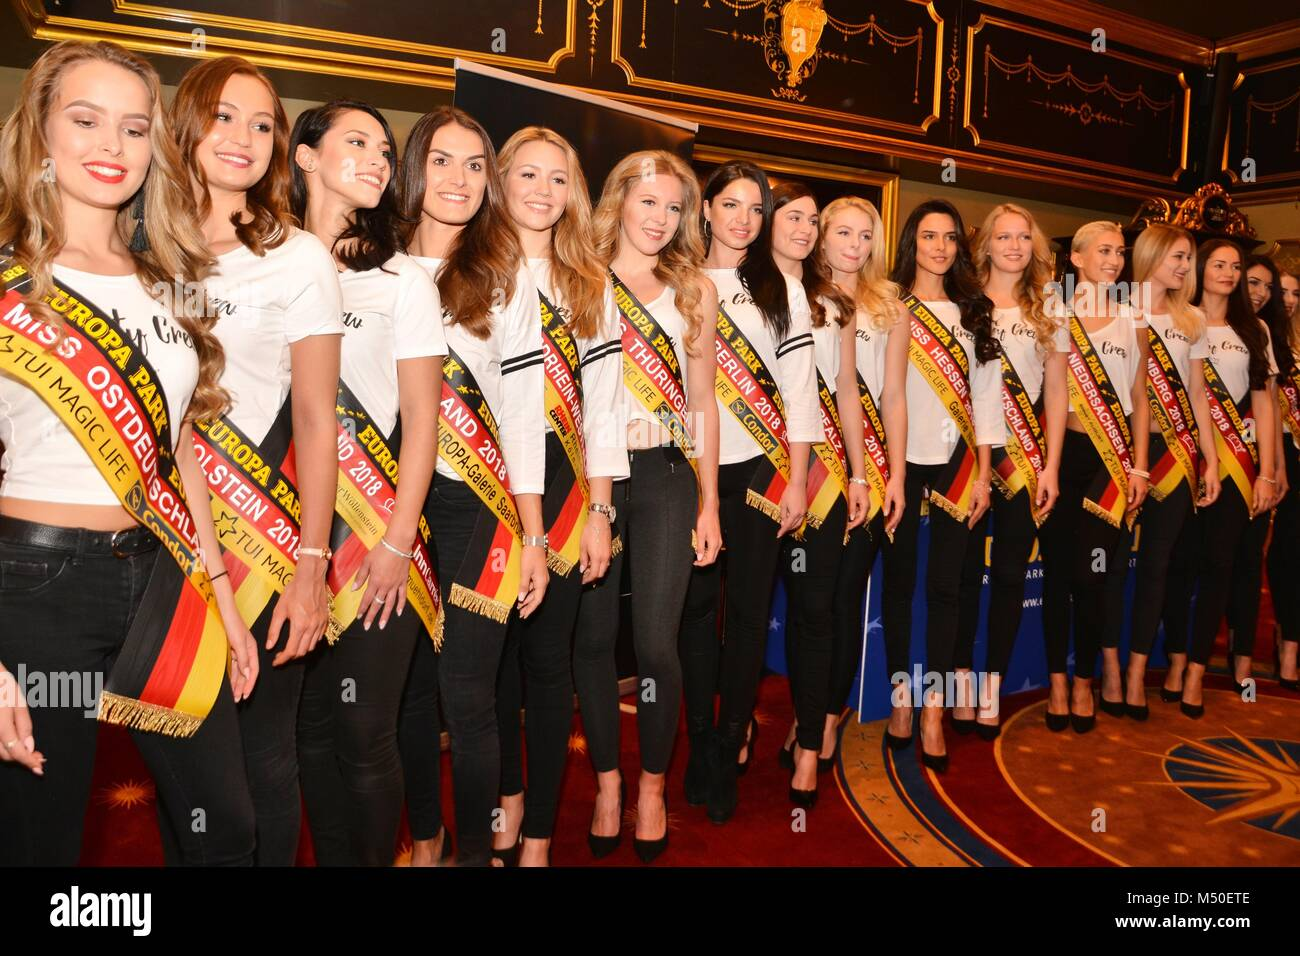 "Rust, Germany, 19th February, 2018, press conference ""Miss Germany - Das Finale 2018"" Credit: mediensegel/Alamy Stock Photo"